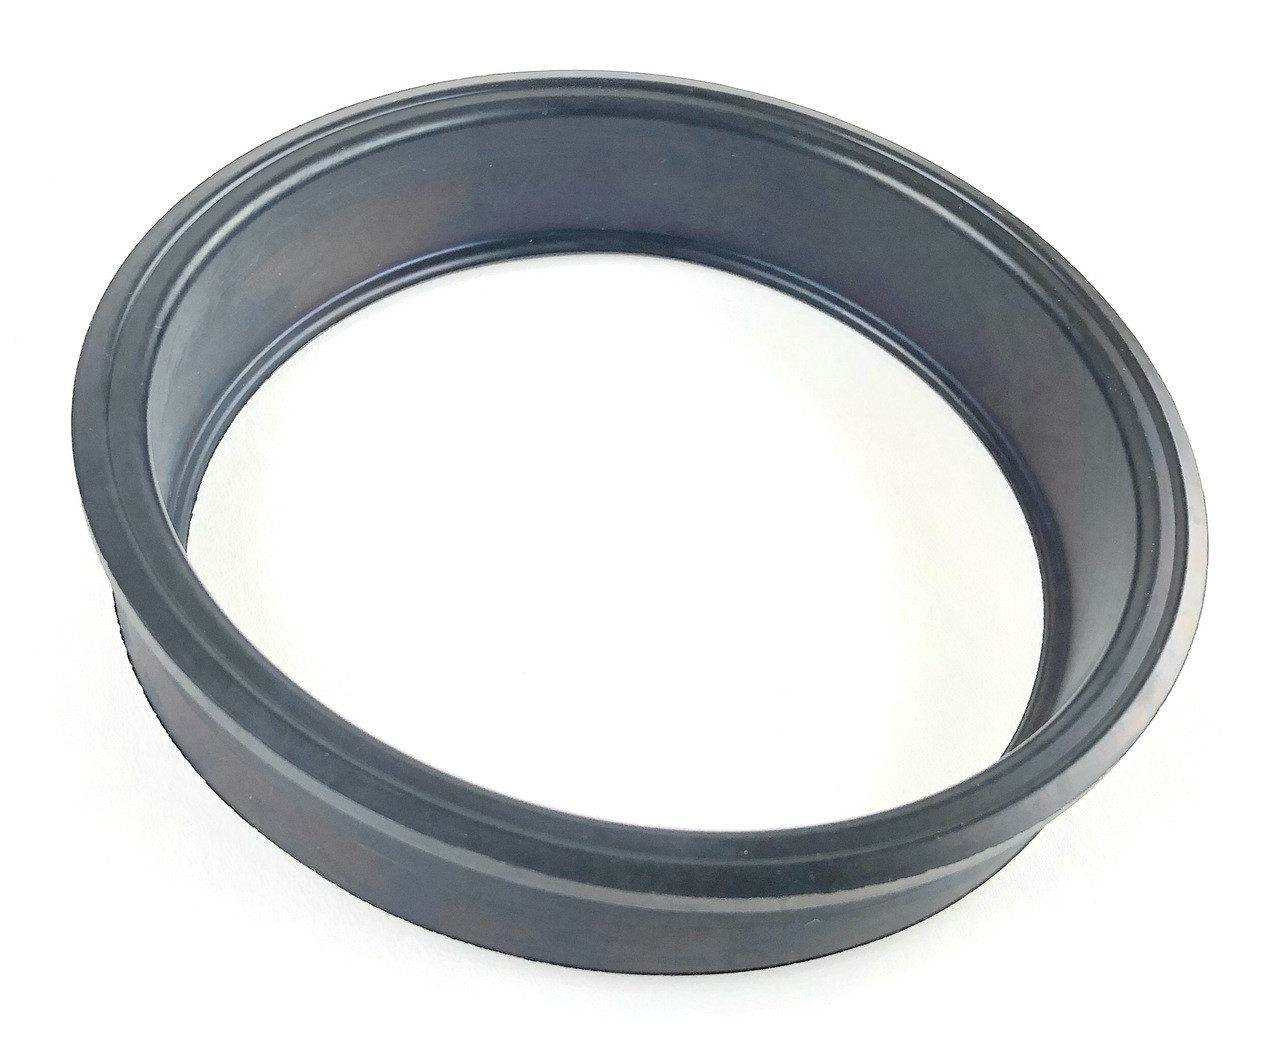 New Fuel Pump Seal Land Rover Defender 90 Discovery Range Rover # NTC-5859